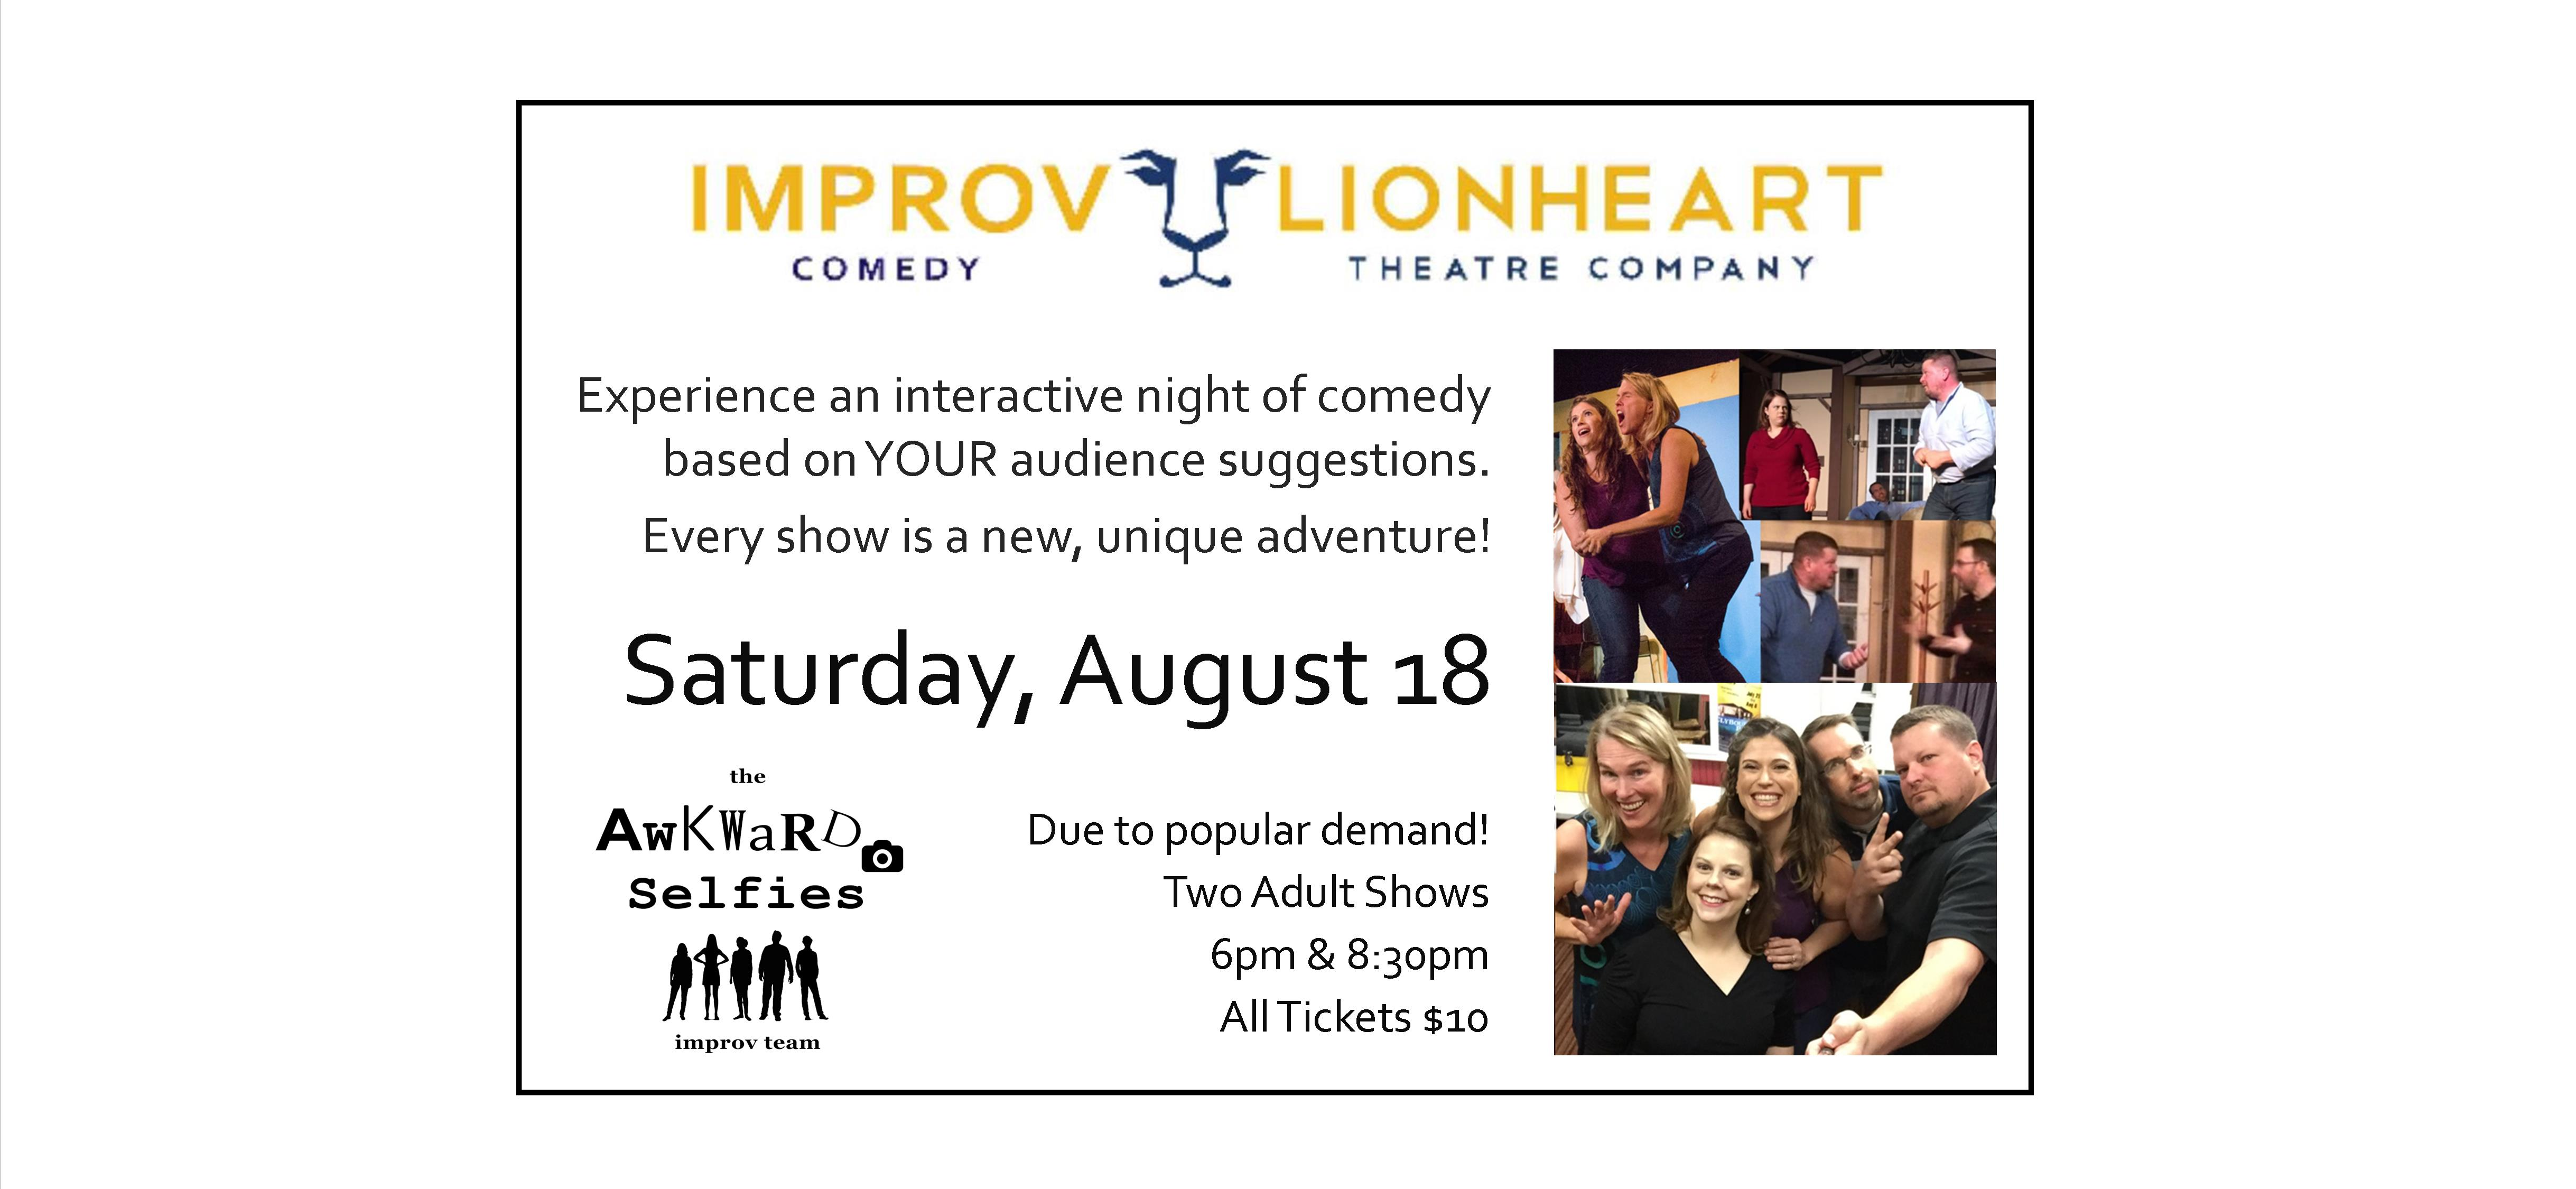 Awkward Selfies Improv at Lionheart Theatre on Aug 18